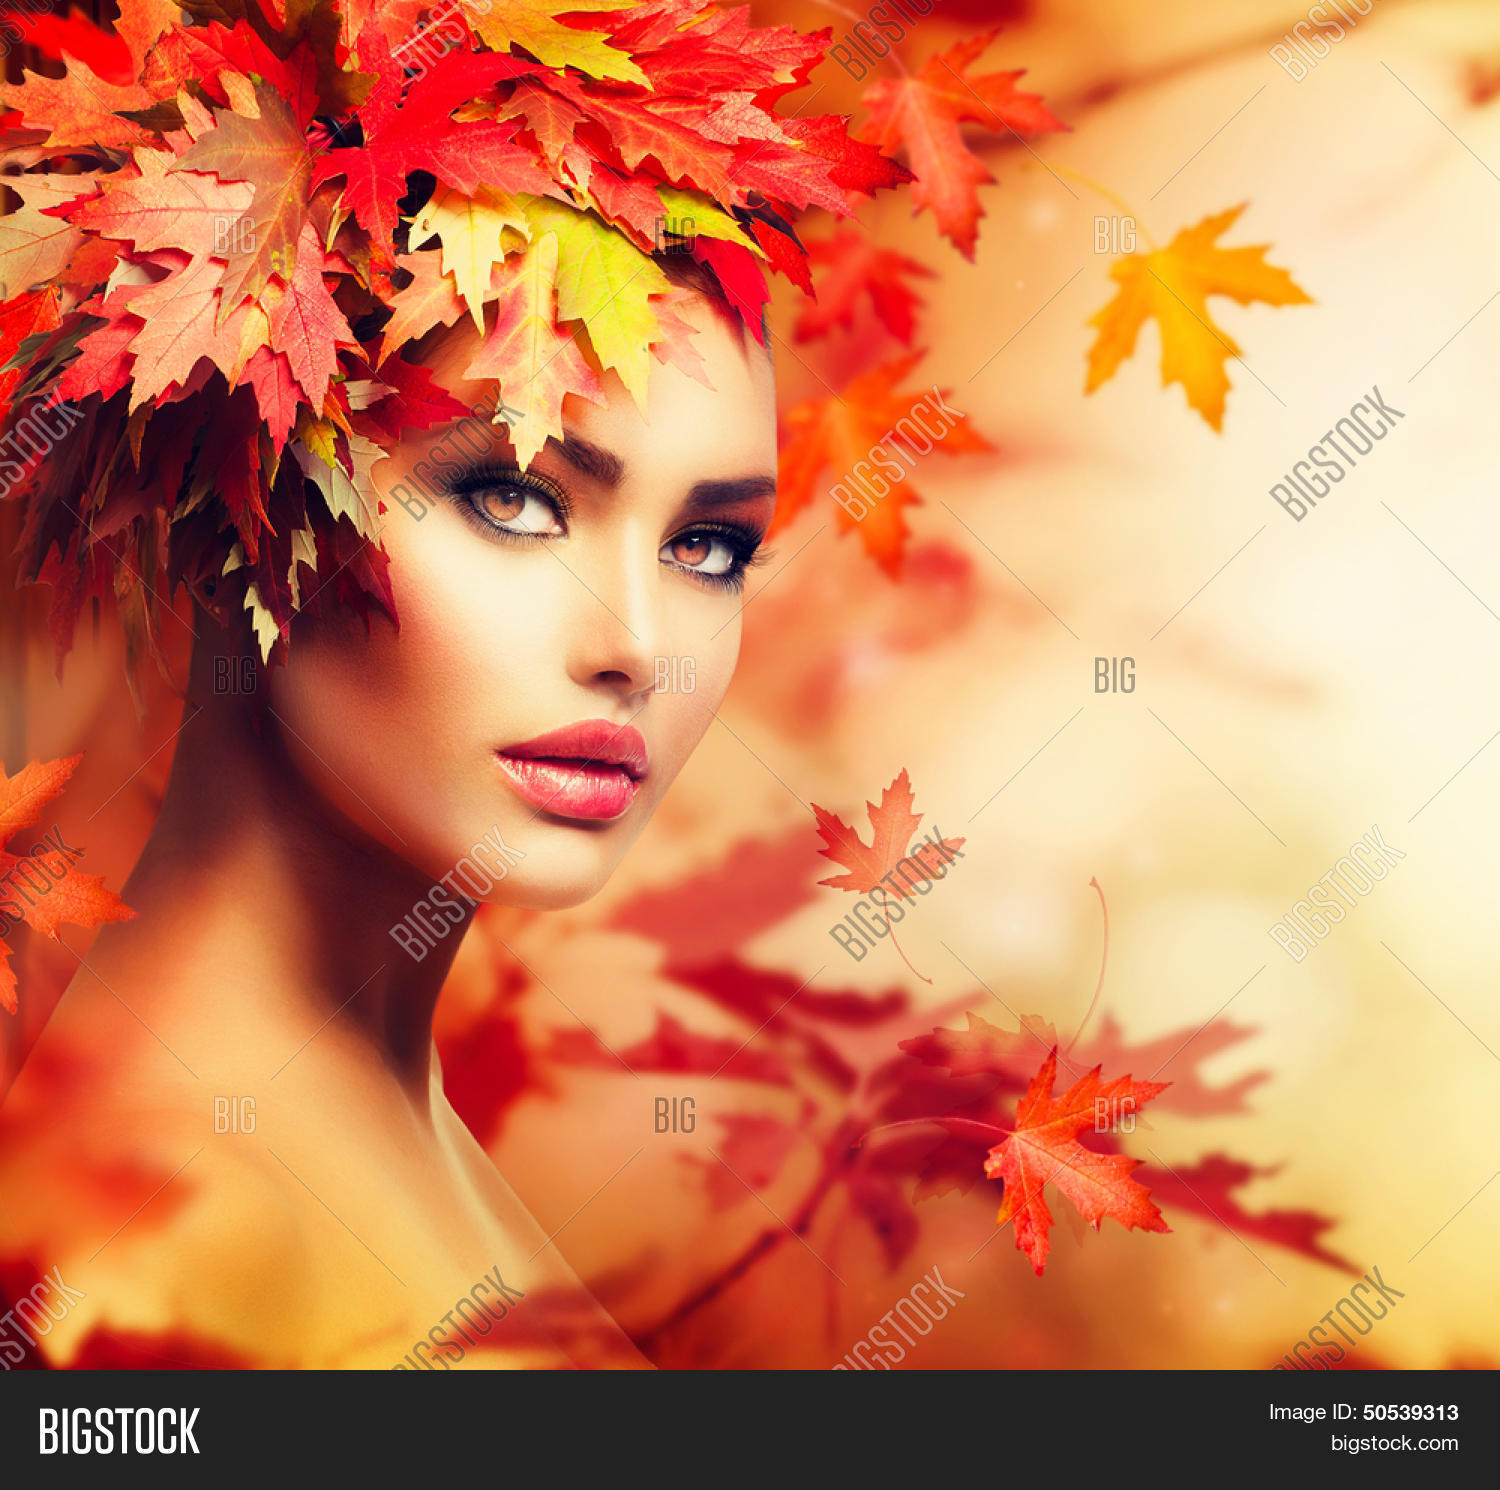 Autumn Woman Portrait Image Photo Free Trial Bigstock